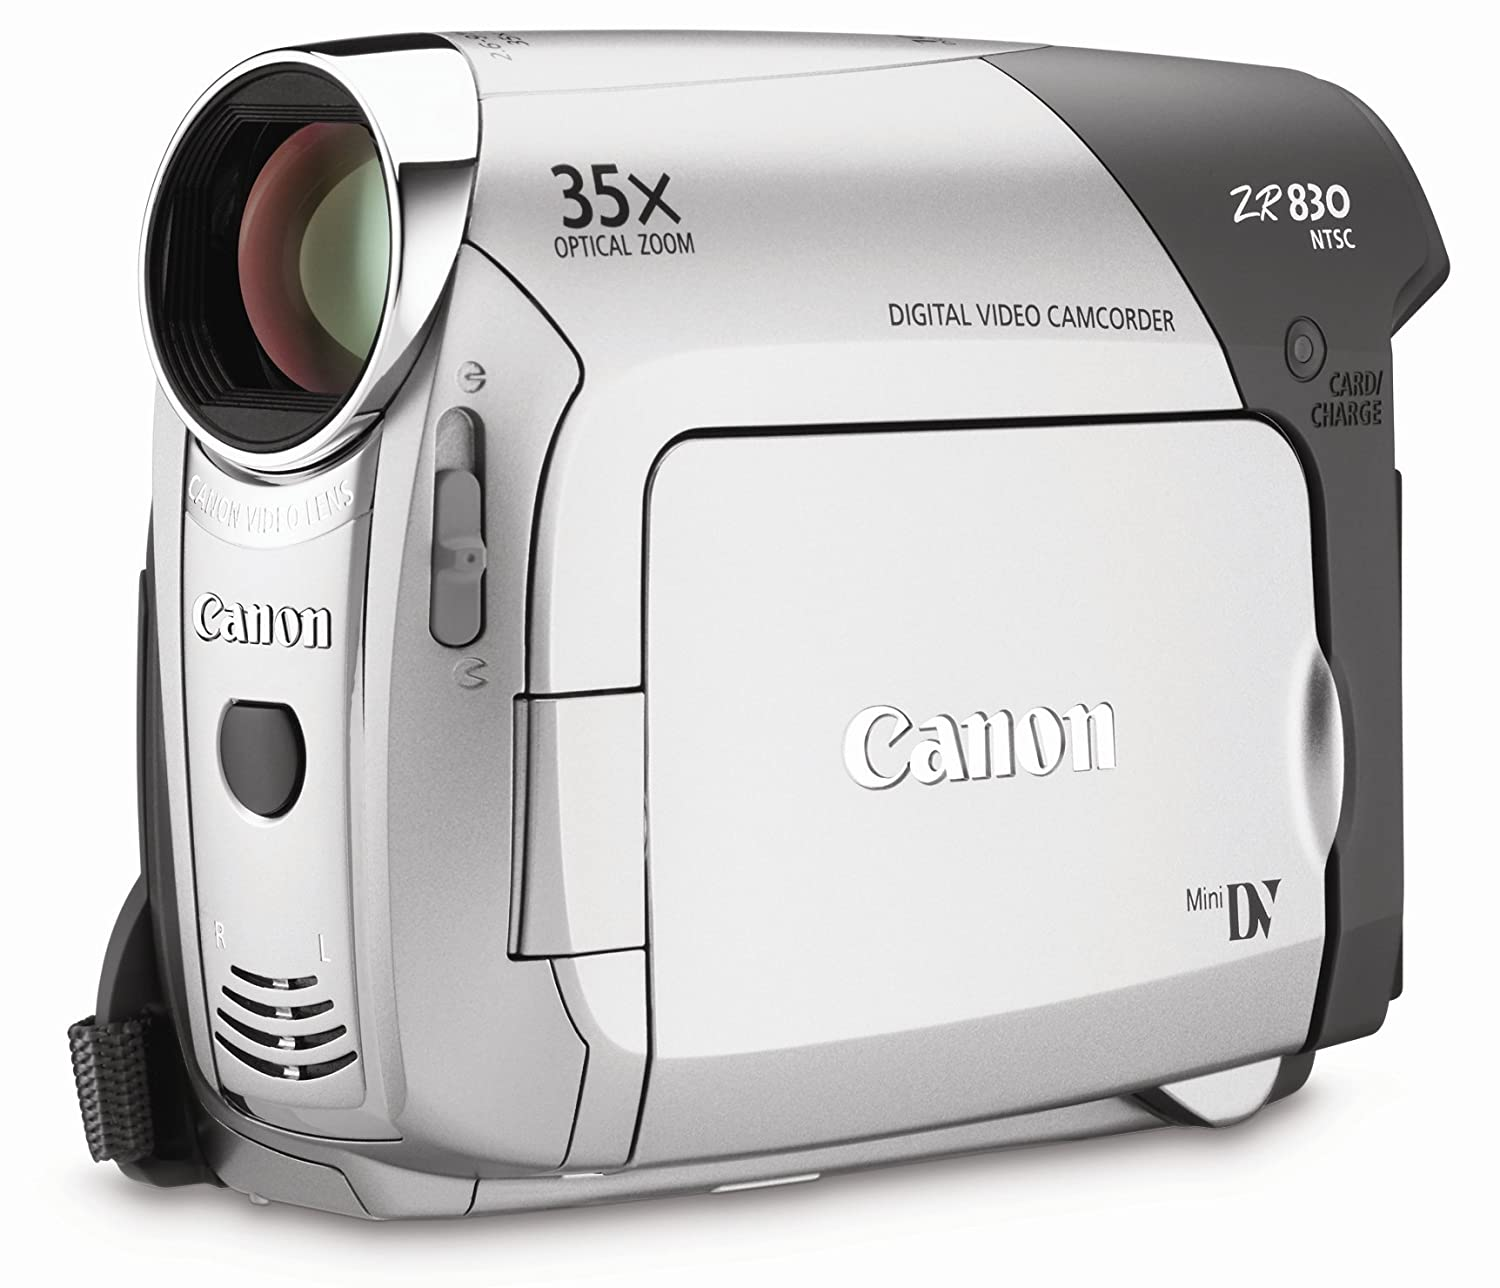 Amazon.com : Canon ZR830 MiniDV Camcorder with 35x Optical Zoom  (Discontinued by Manufacturer) : Camcorder Mini Dv : Camera & Photo